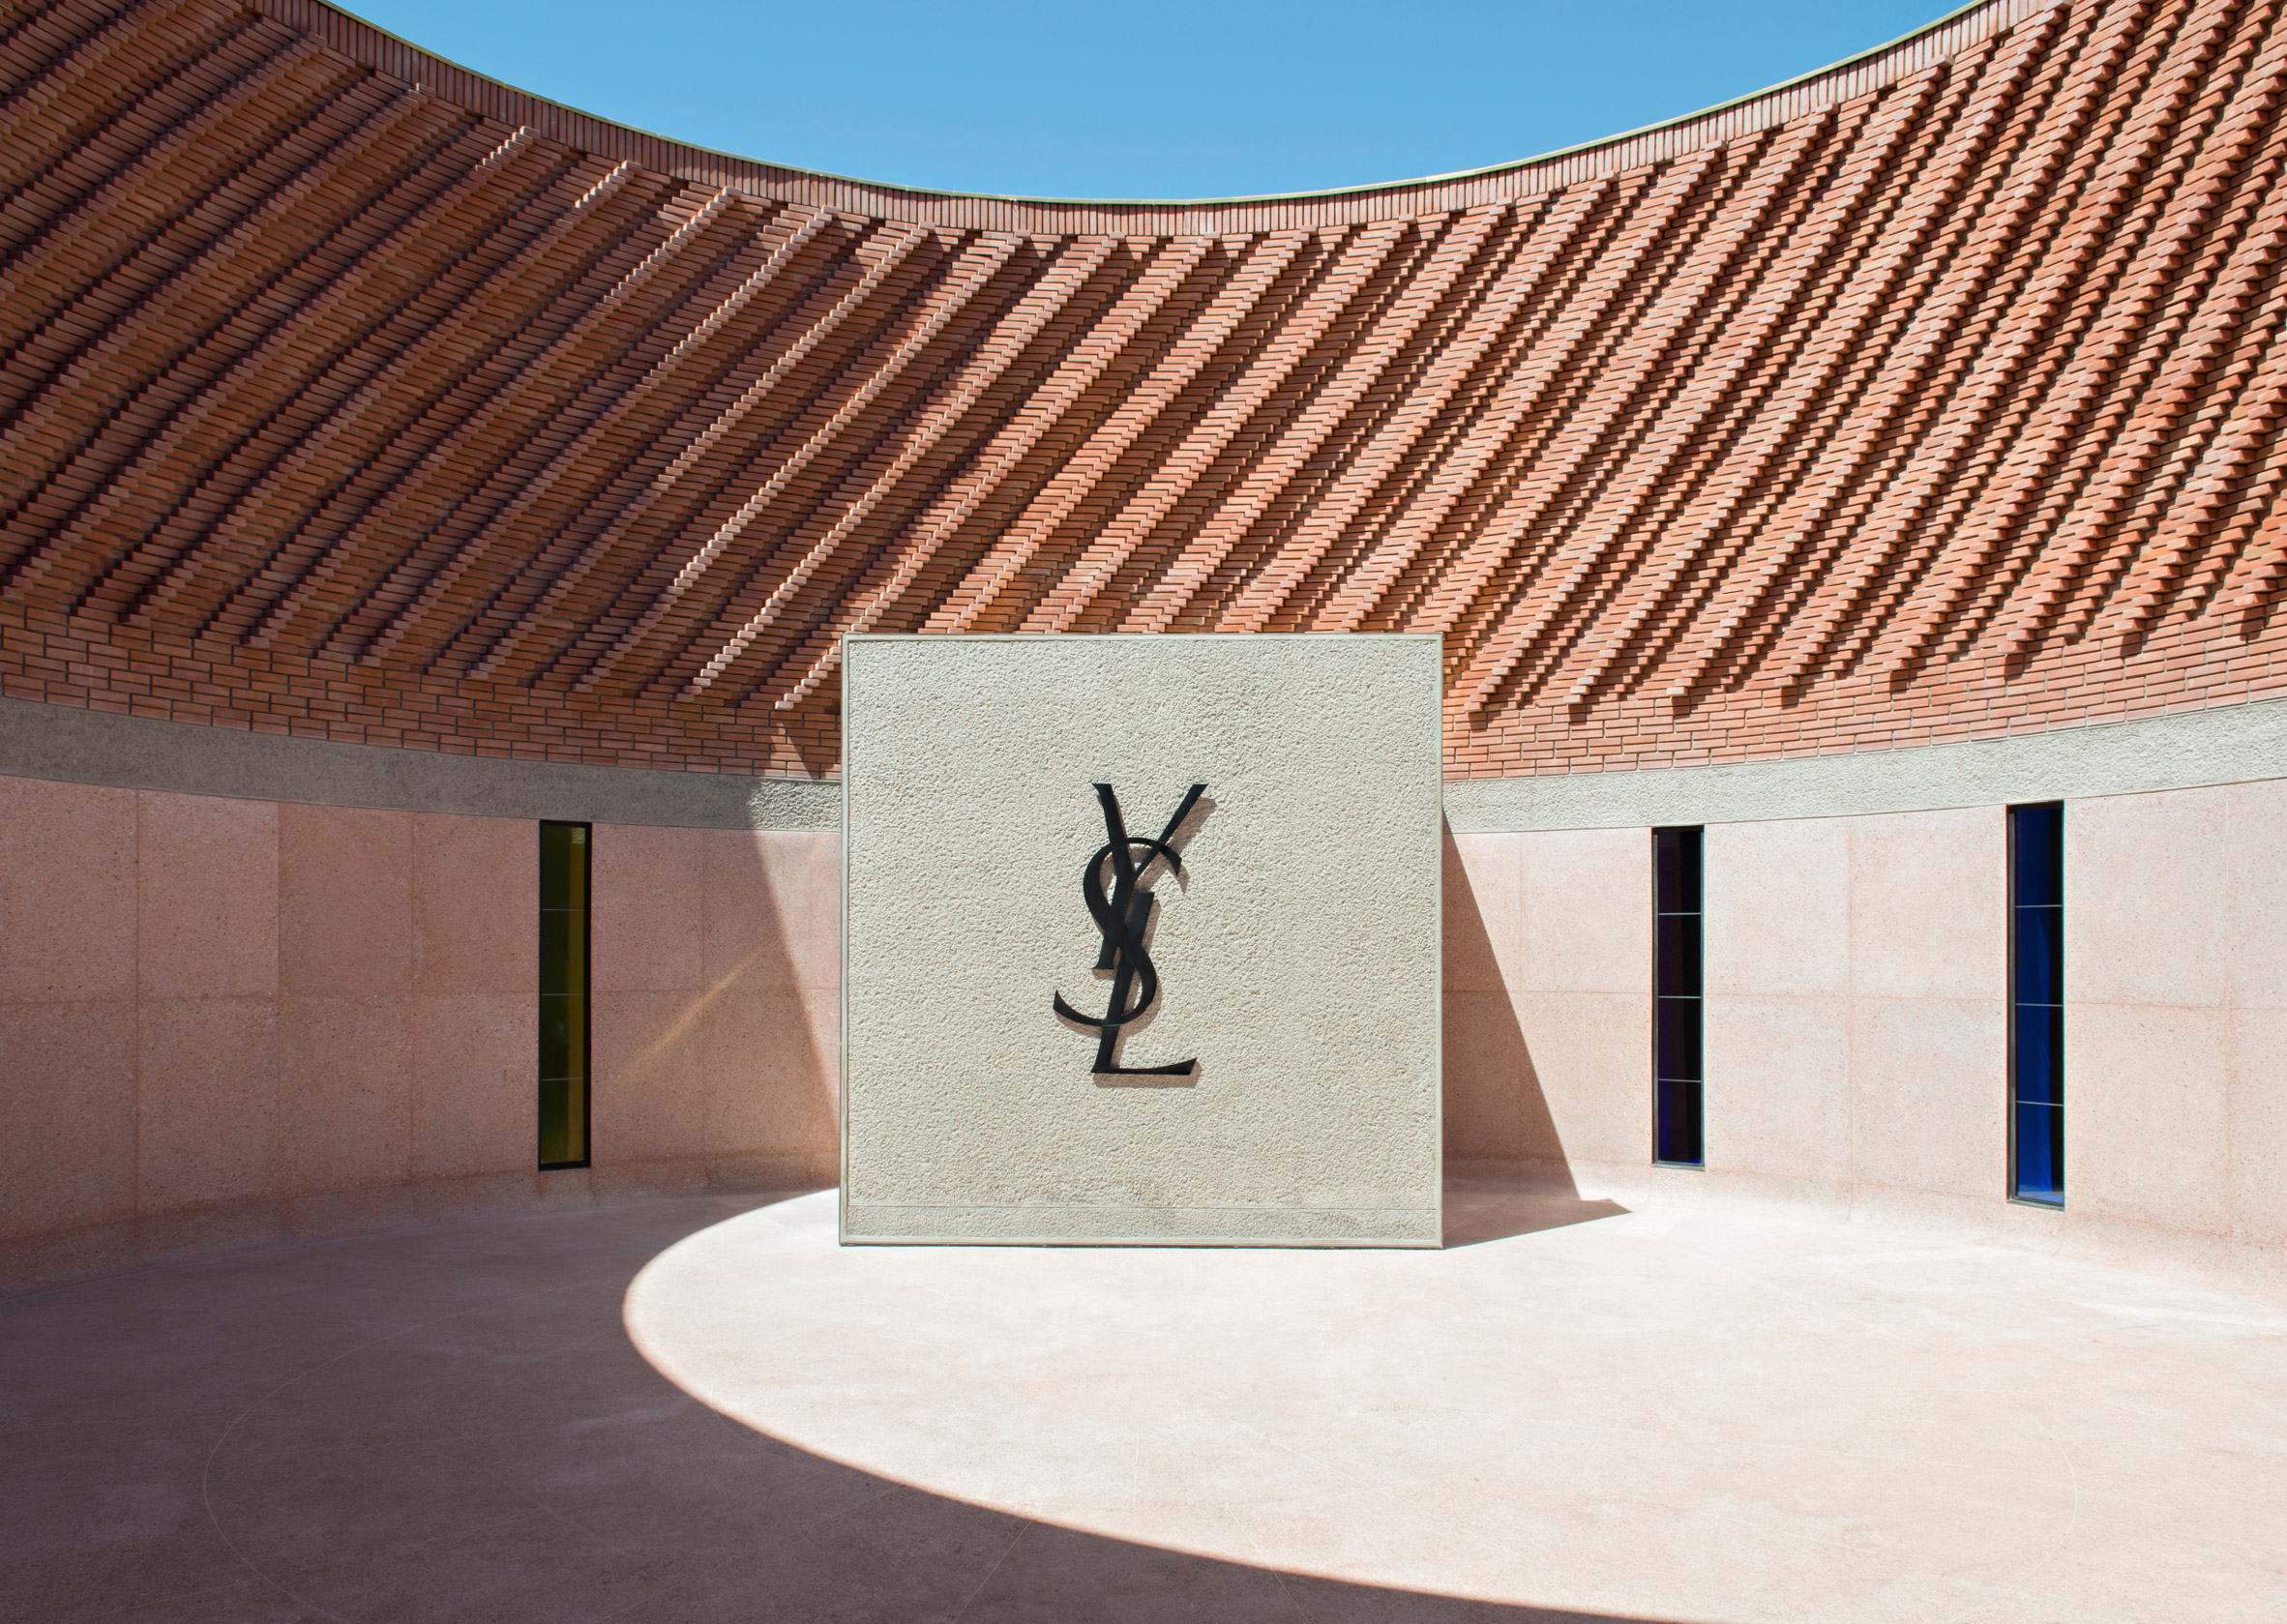 Studio KO celebrates Yves Saint Laurent's fashion oeuvre with Marrakech museum